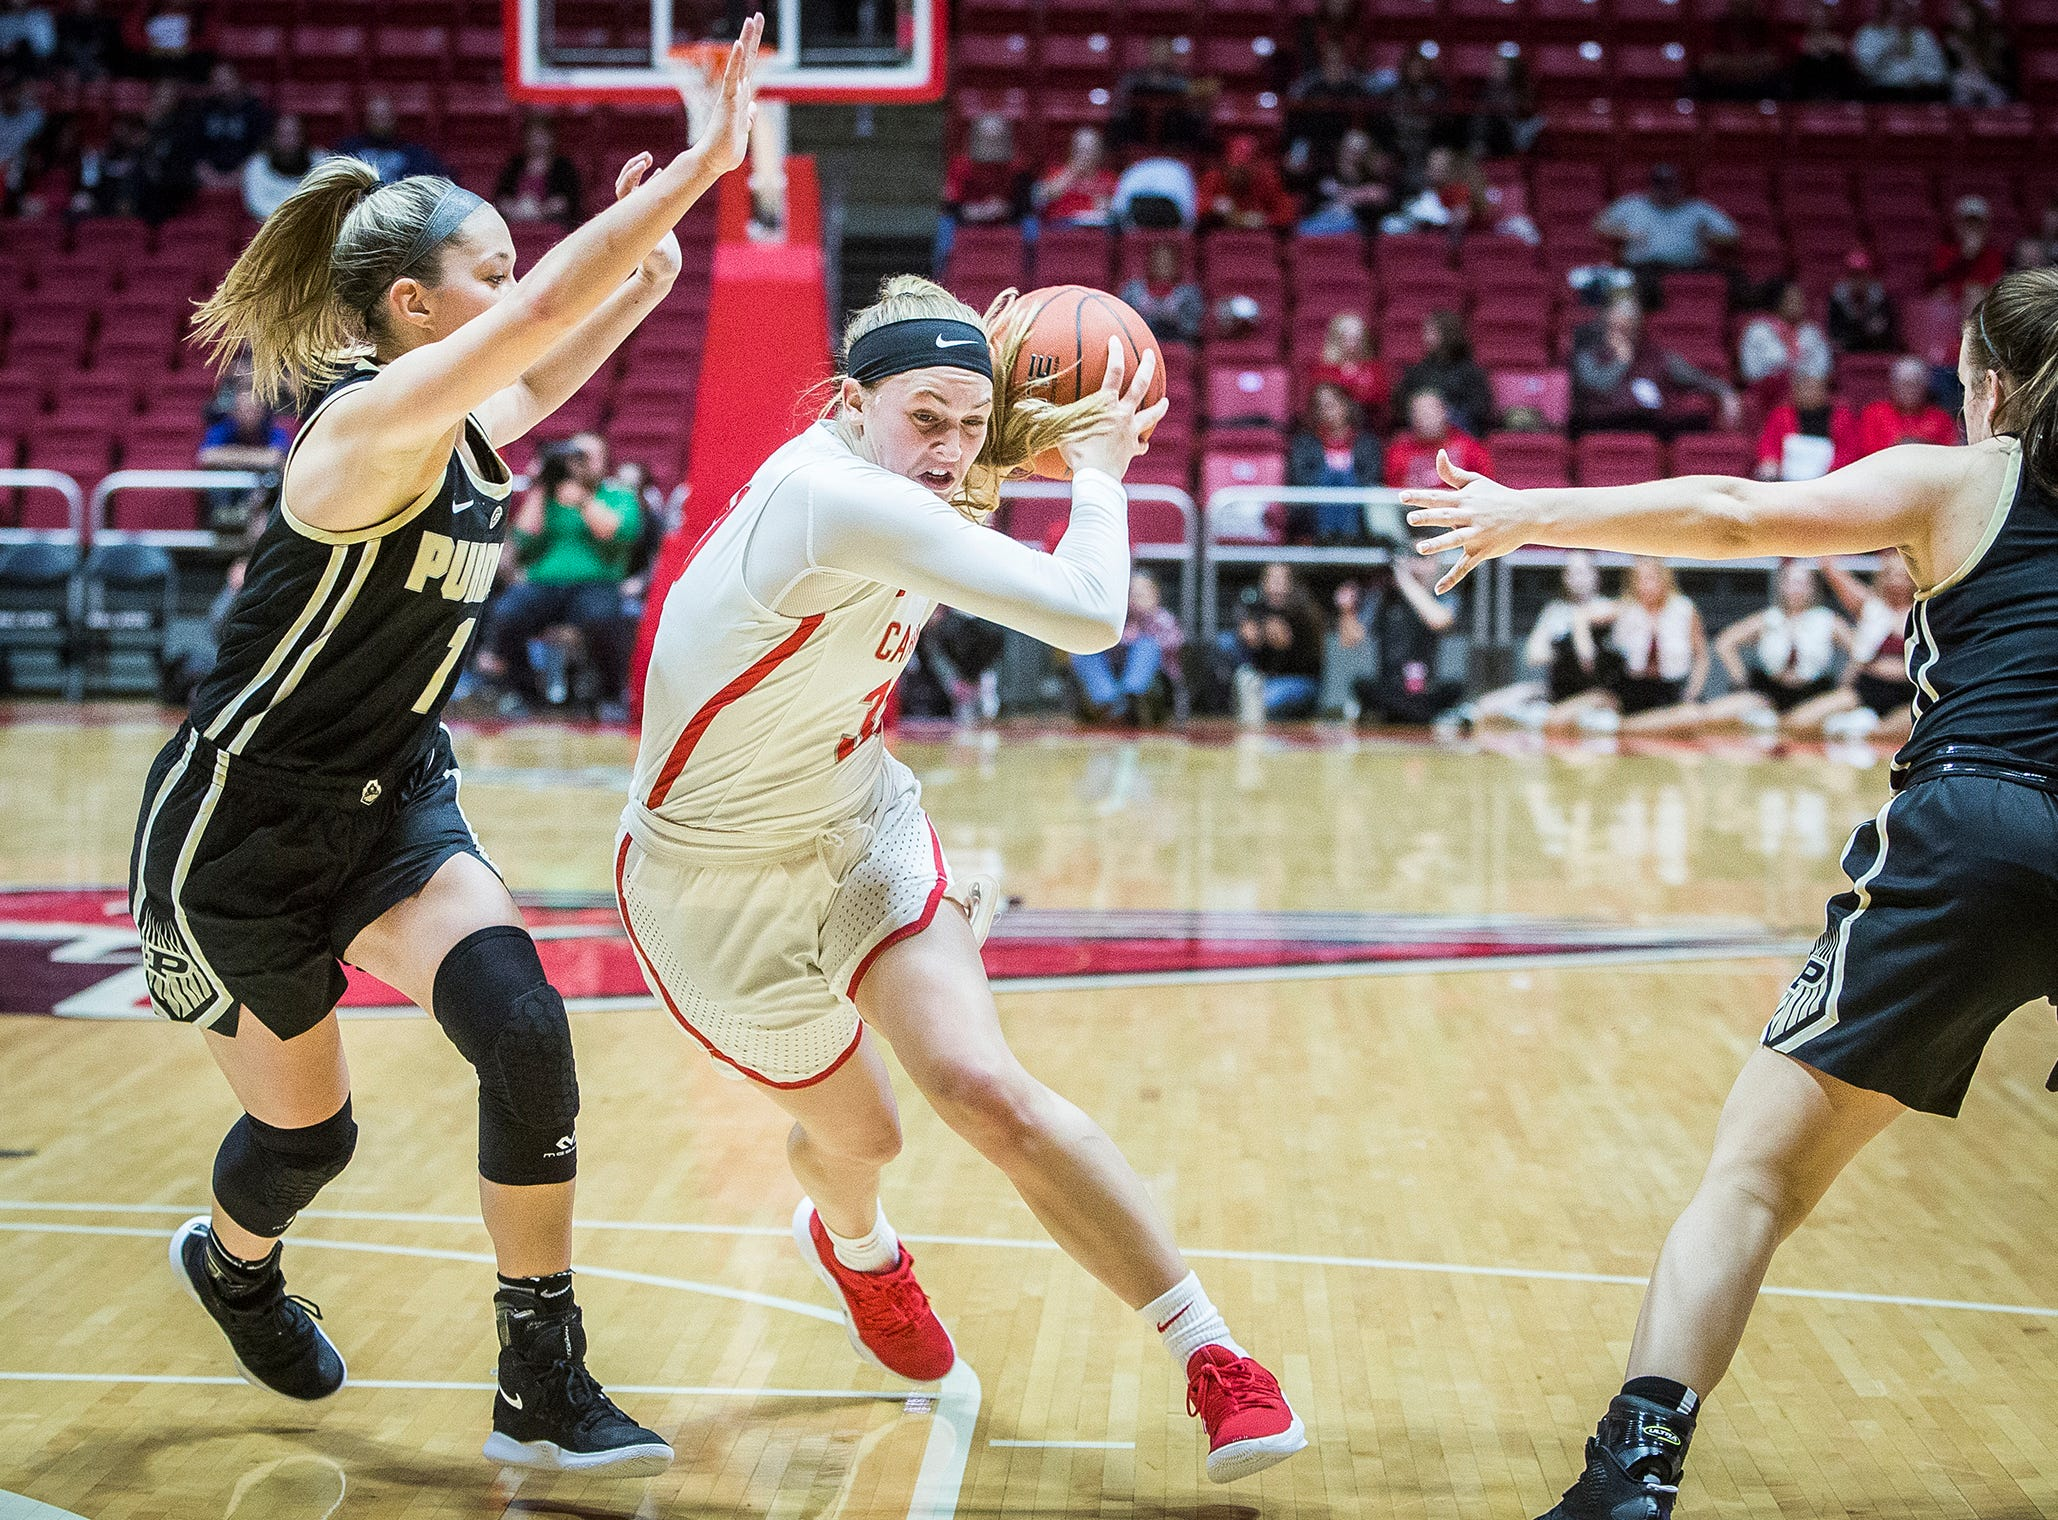 Ball State's Anna Clephane slips past Purdue's defense during their game at Worthen Arena Wednesday, Nov. 7, 2018.